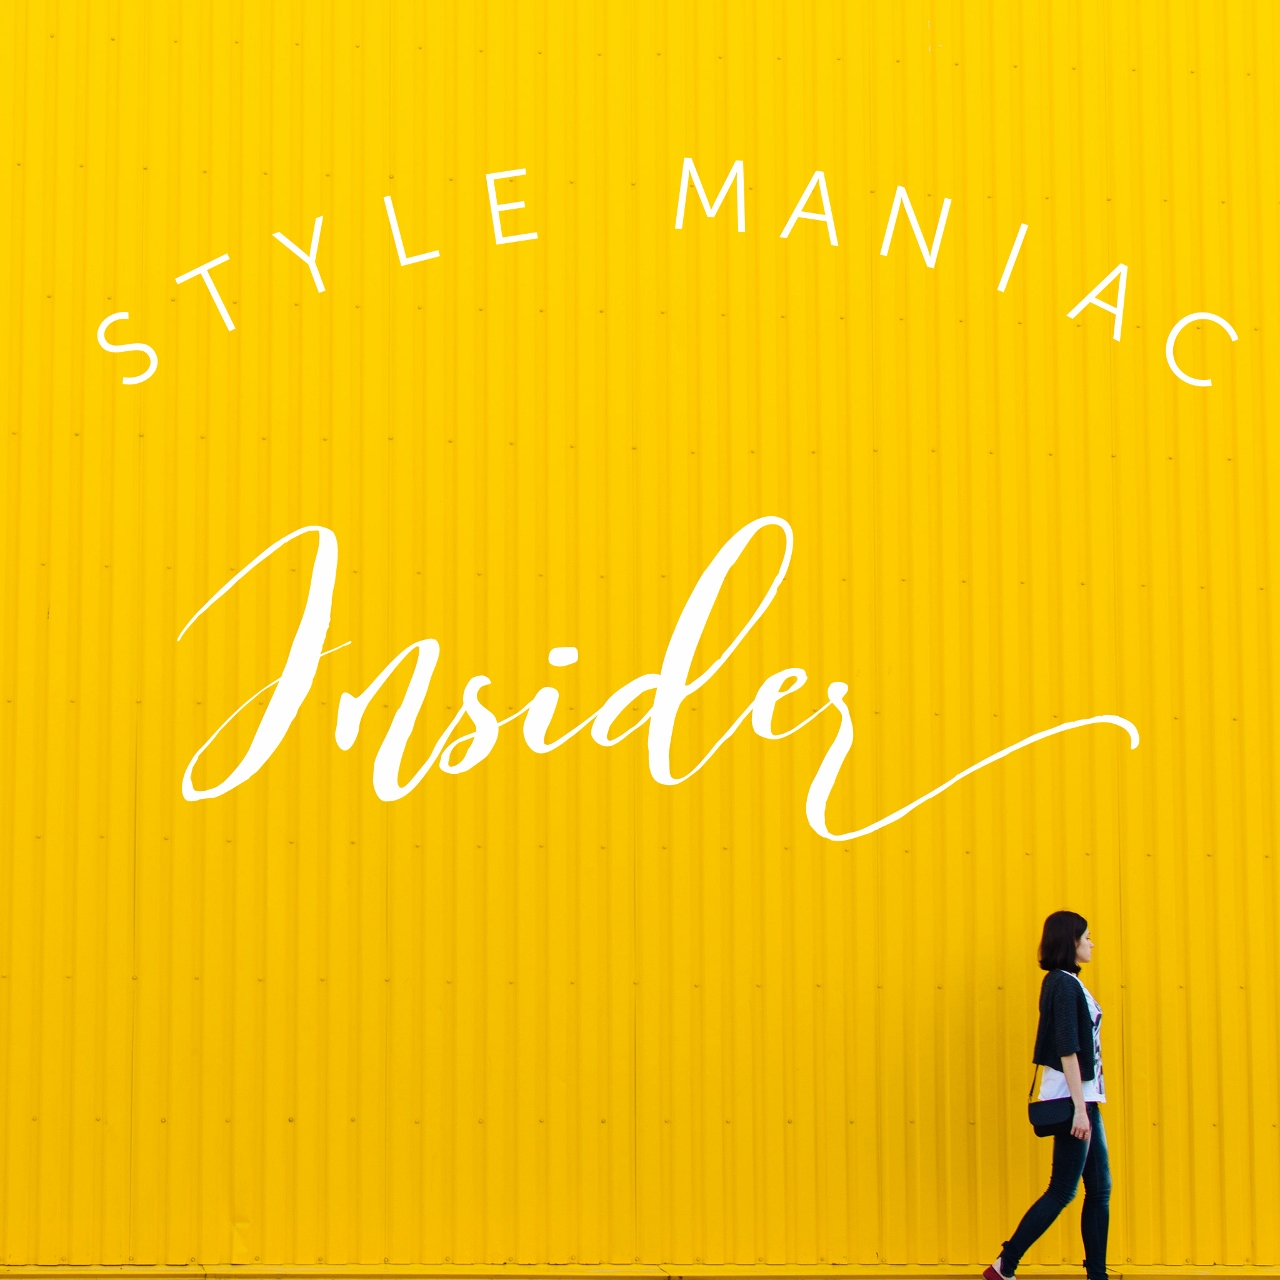 Style Maniac Insider newsletter perks deals behind scenes exclusives VIP